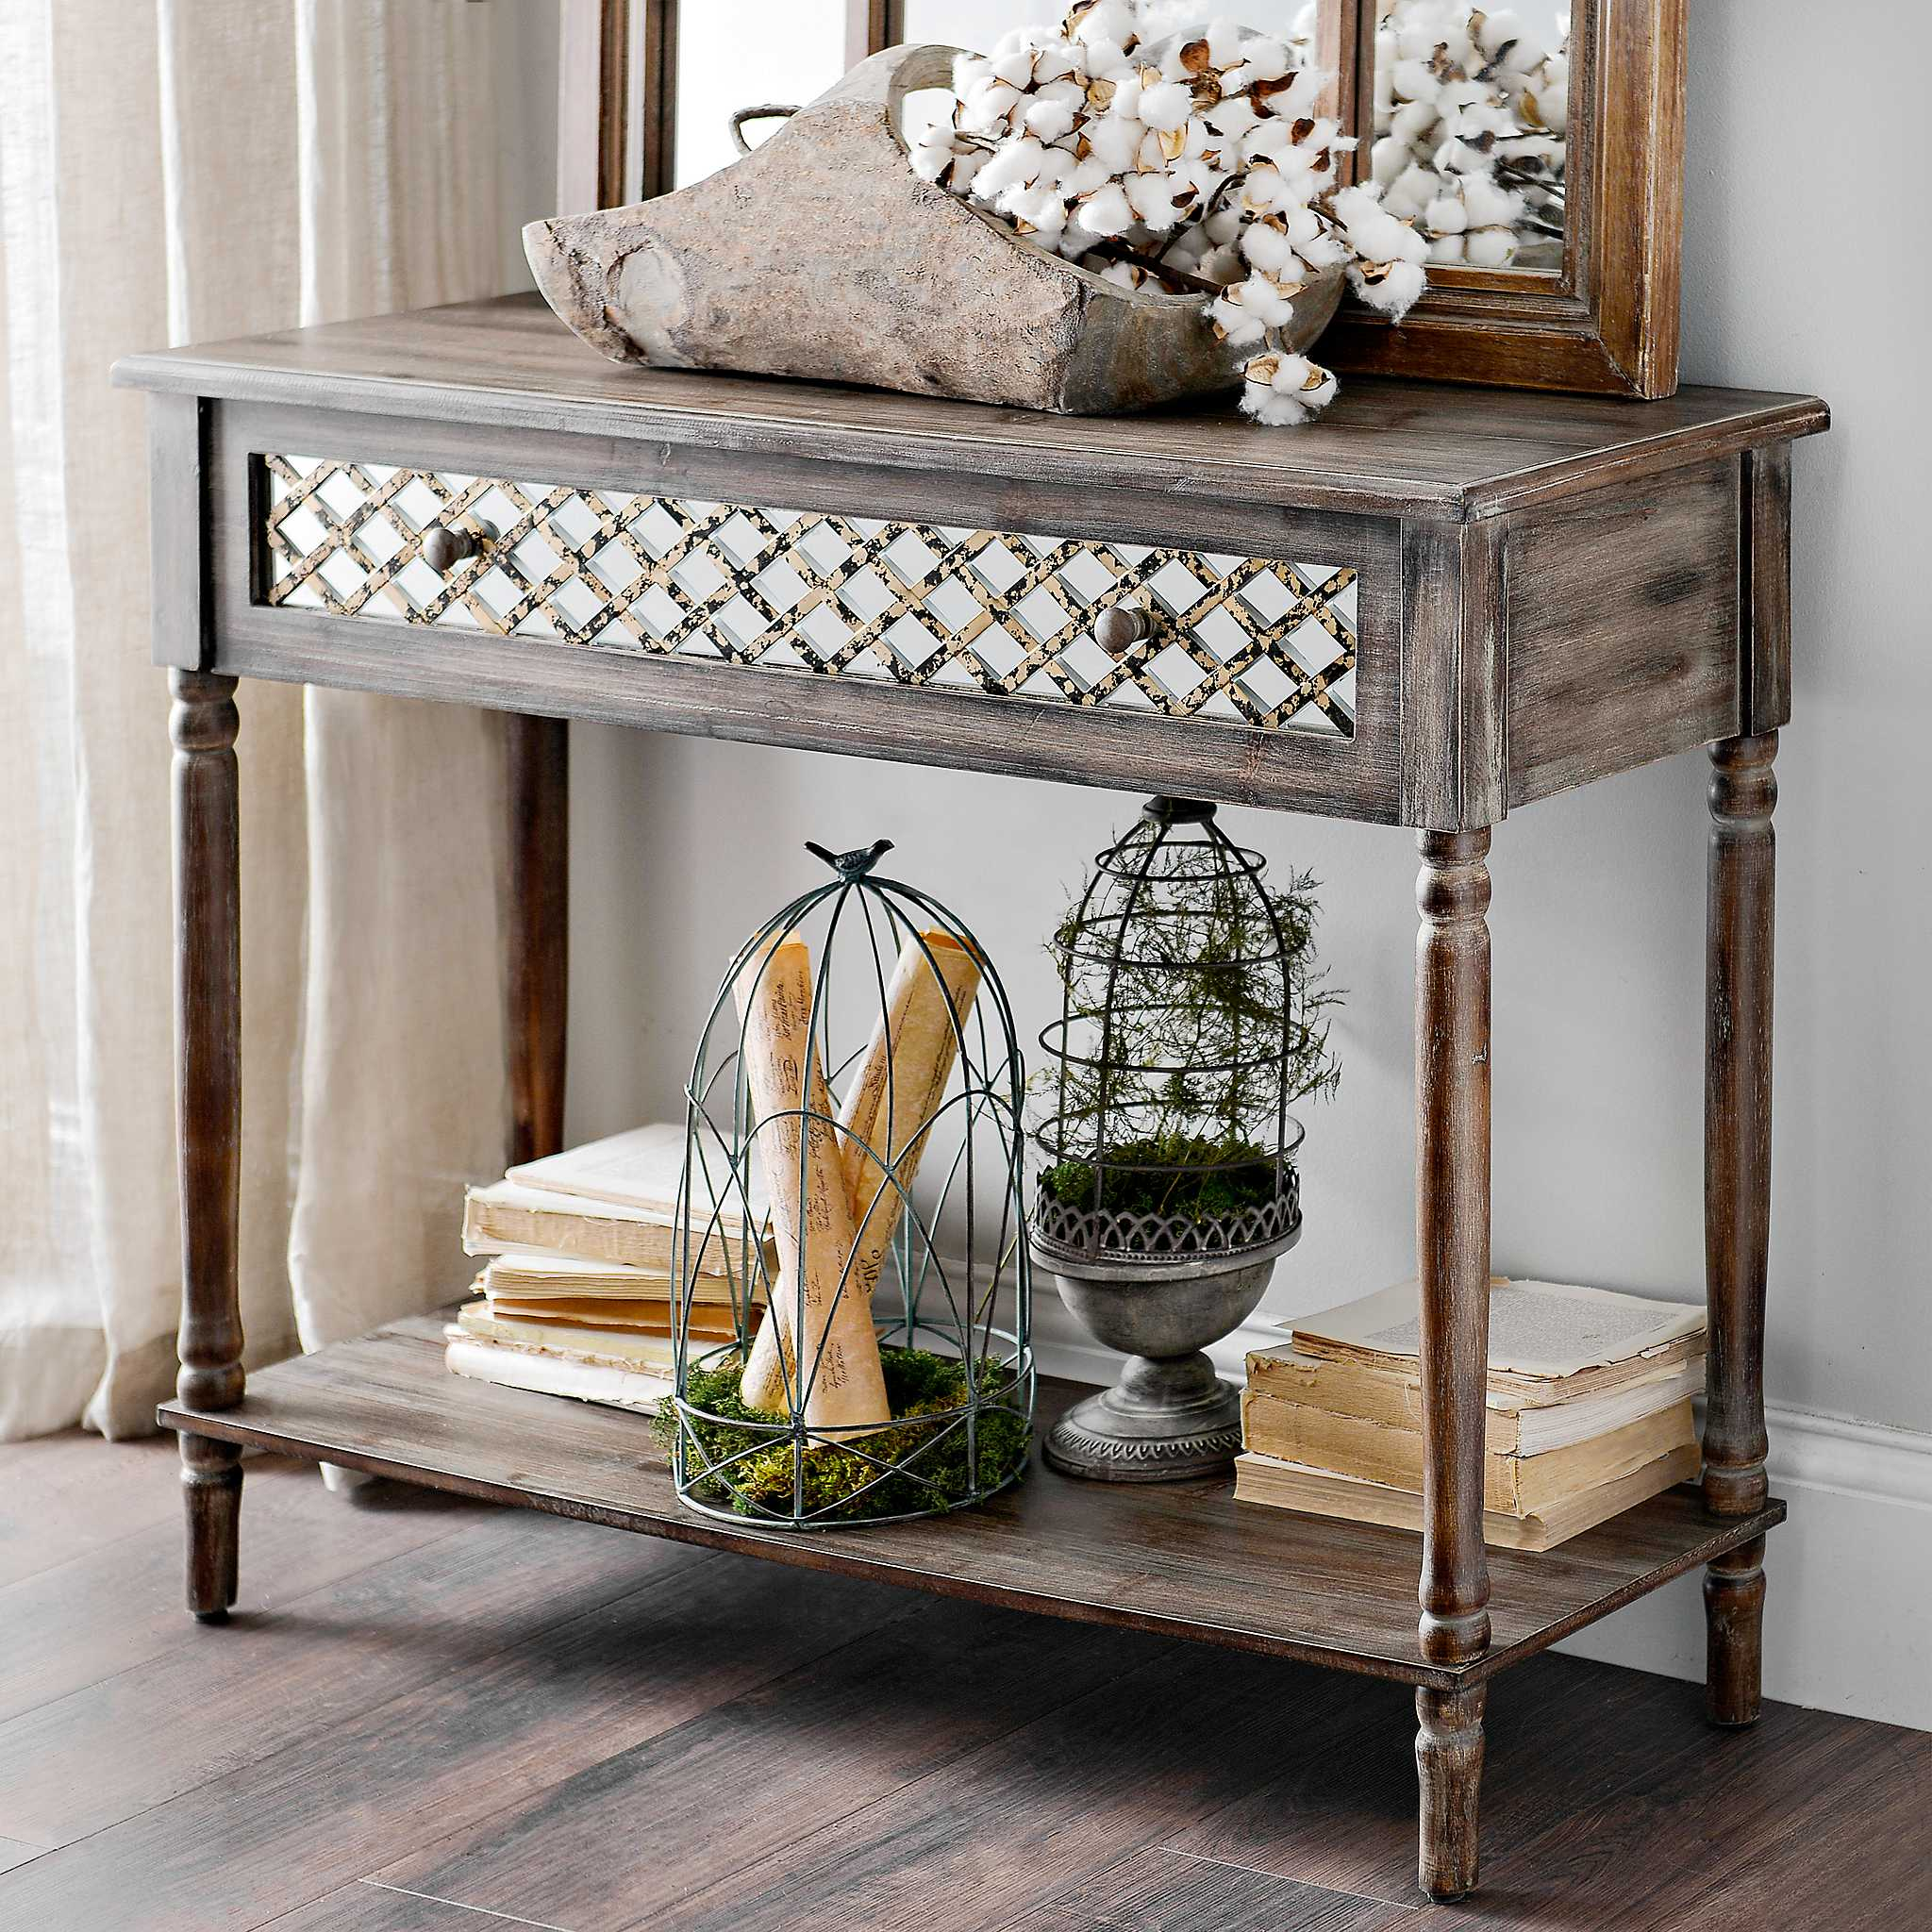 Foyer Cabinet Xl : Distressed rustic mirrored console table kirklands